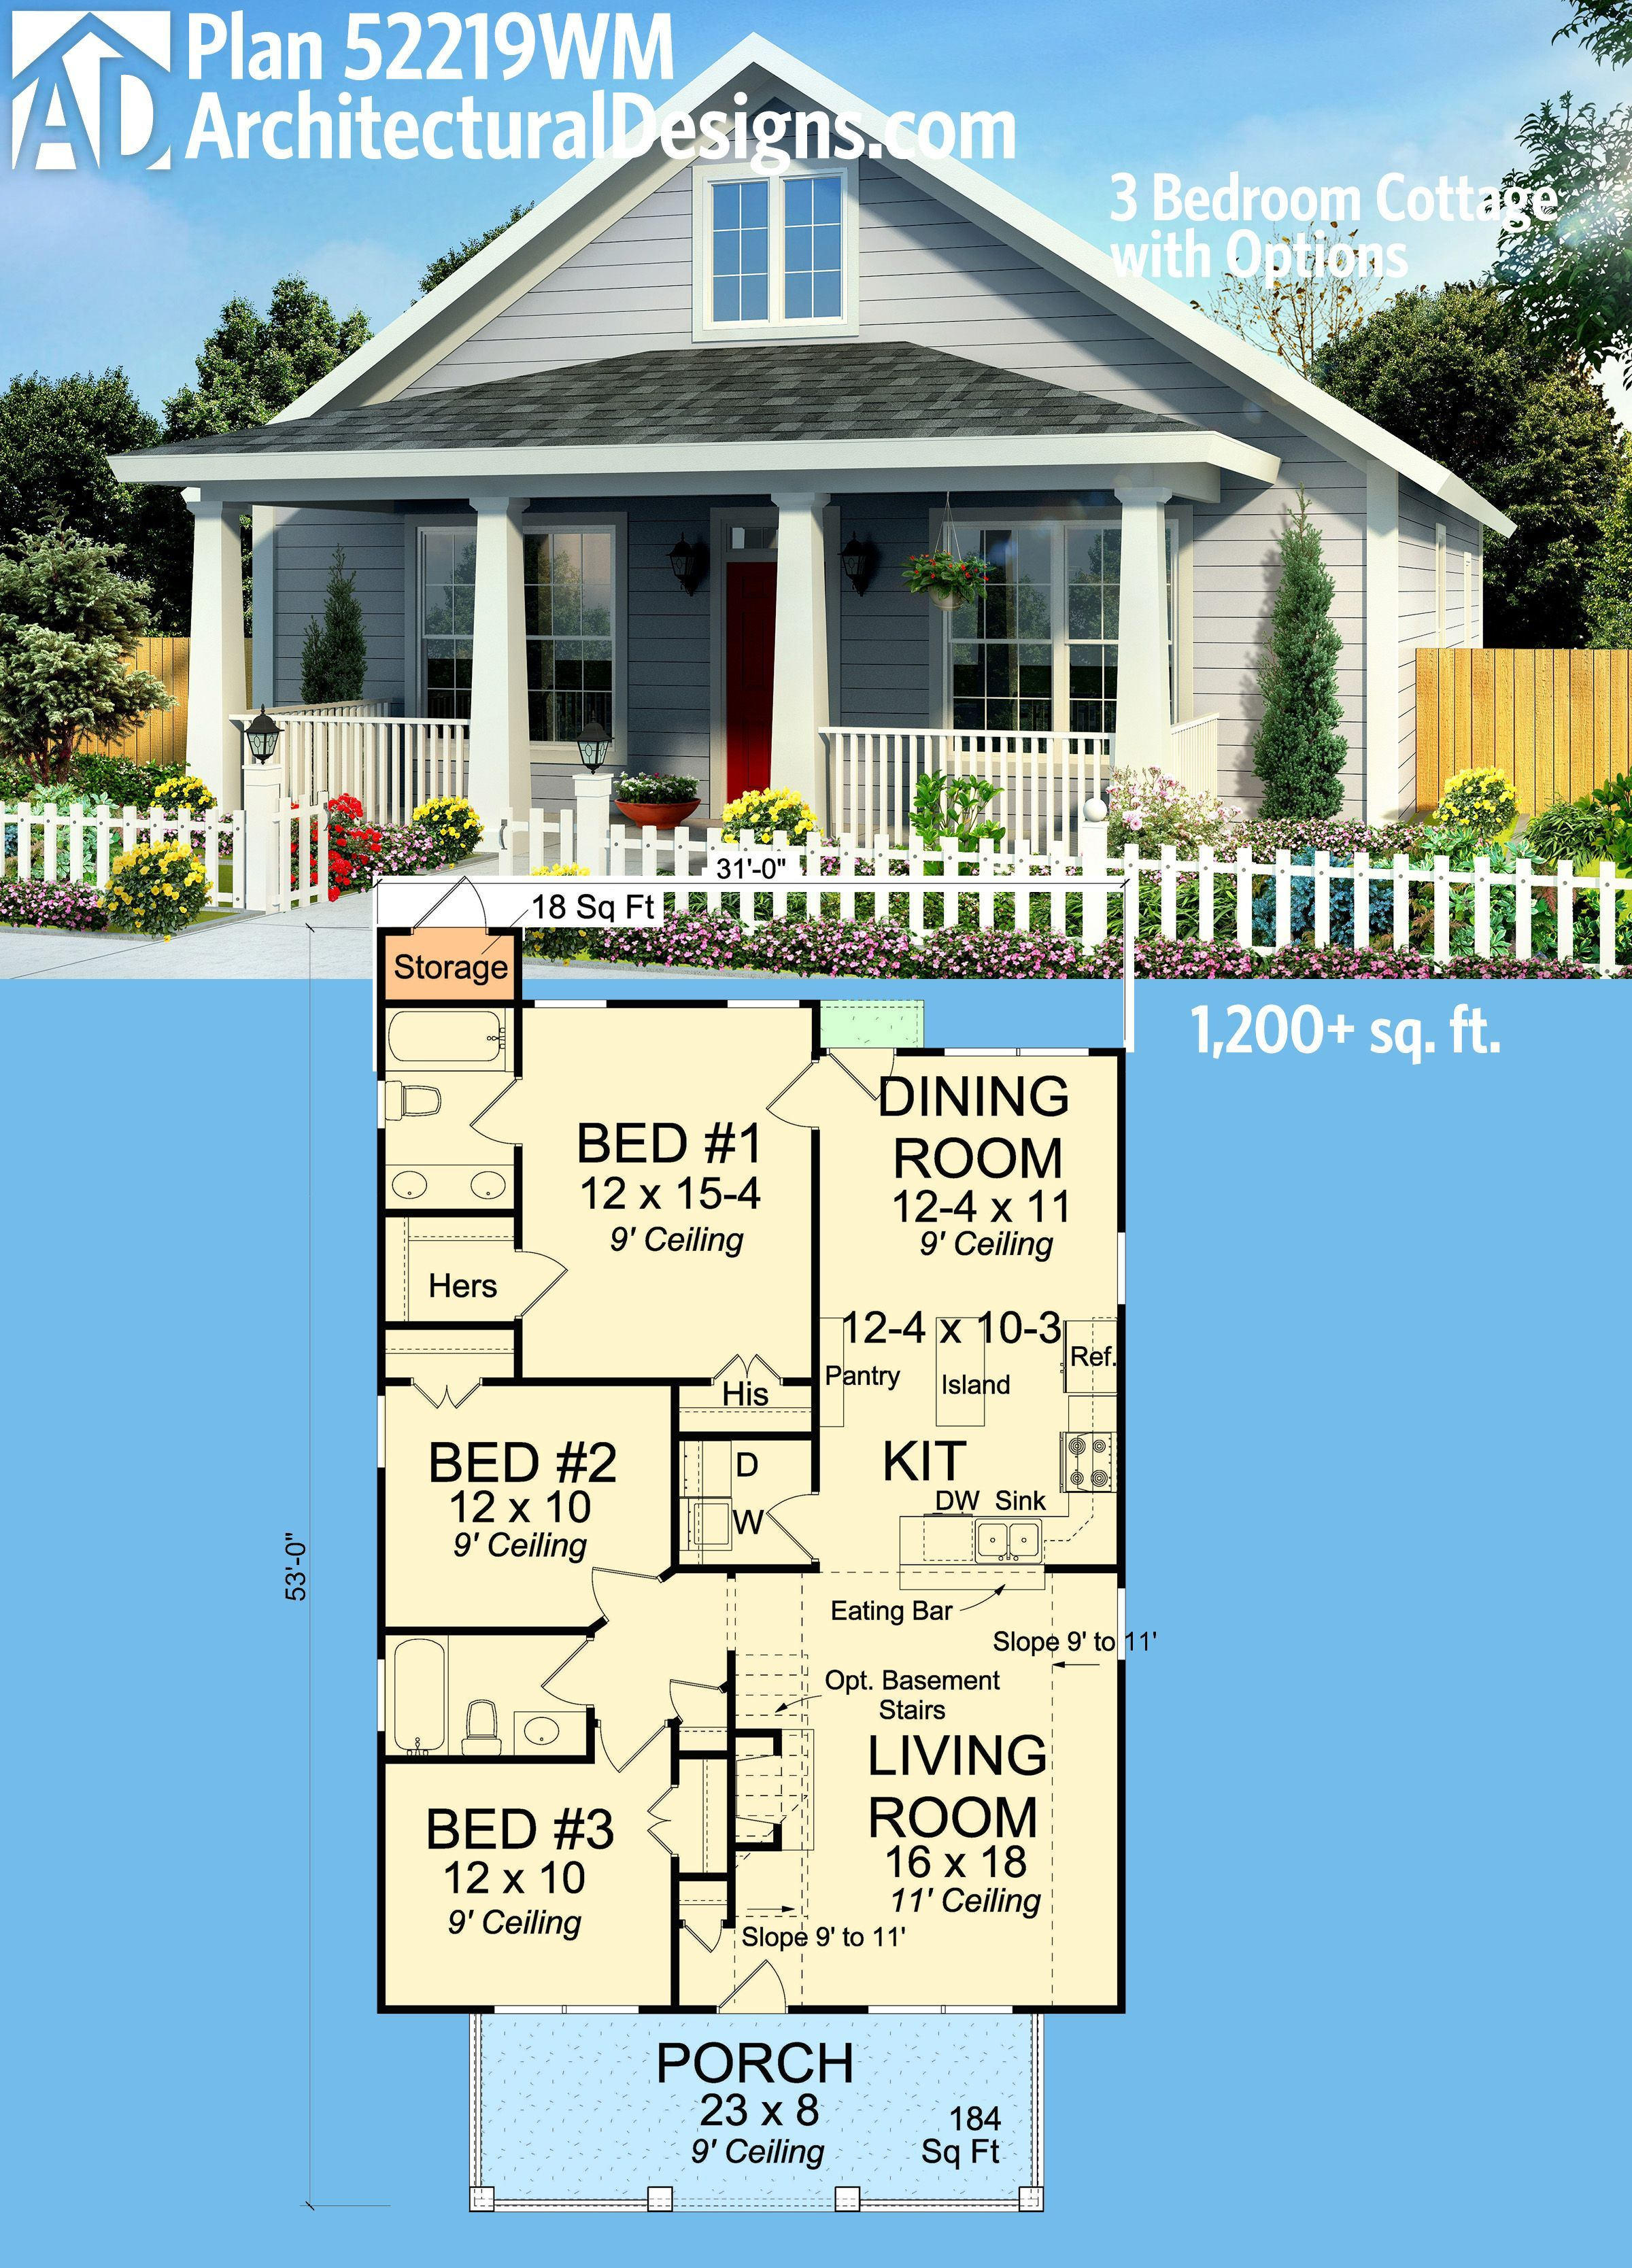 Architectural Designs 3 Bed Cottage House Plan 52219wm Gives You Over 1 200 Sq Ft Plus A Great Front New House Plans Cottage Floor Plans Cottage House Plans